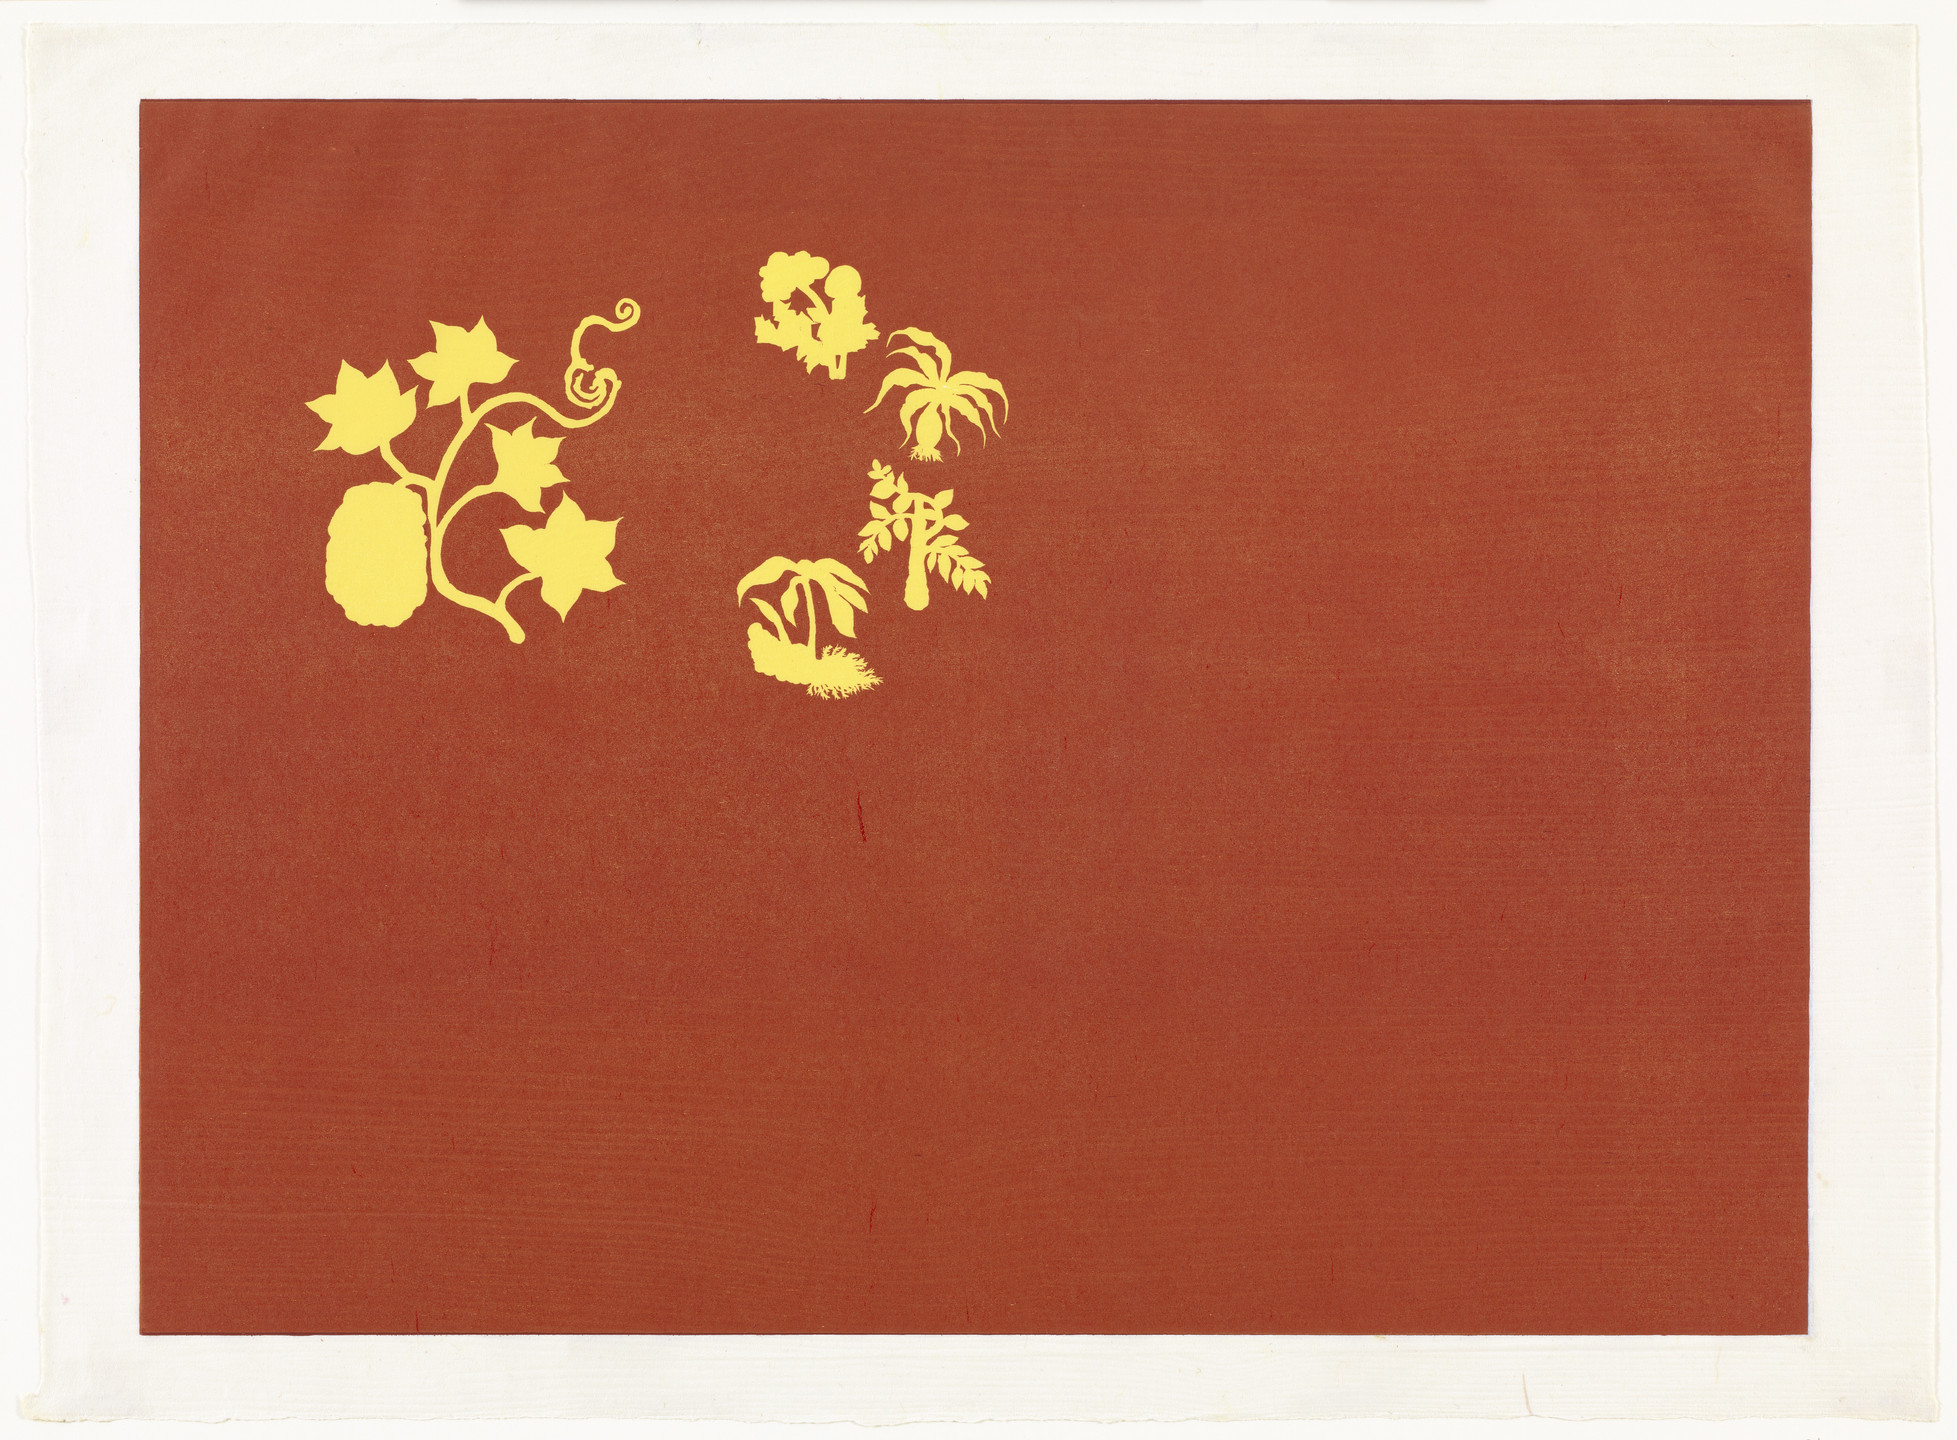 Mel Chin. The Flag of the Agricultural Revolution. 1997